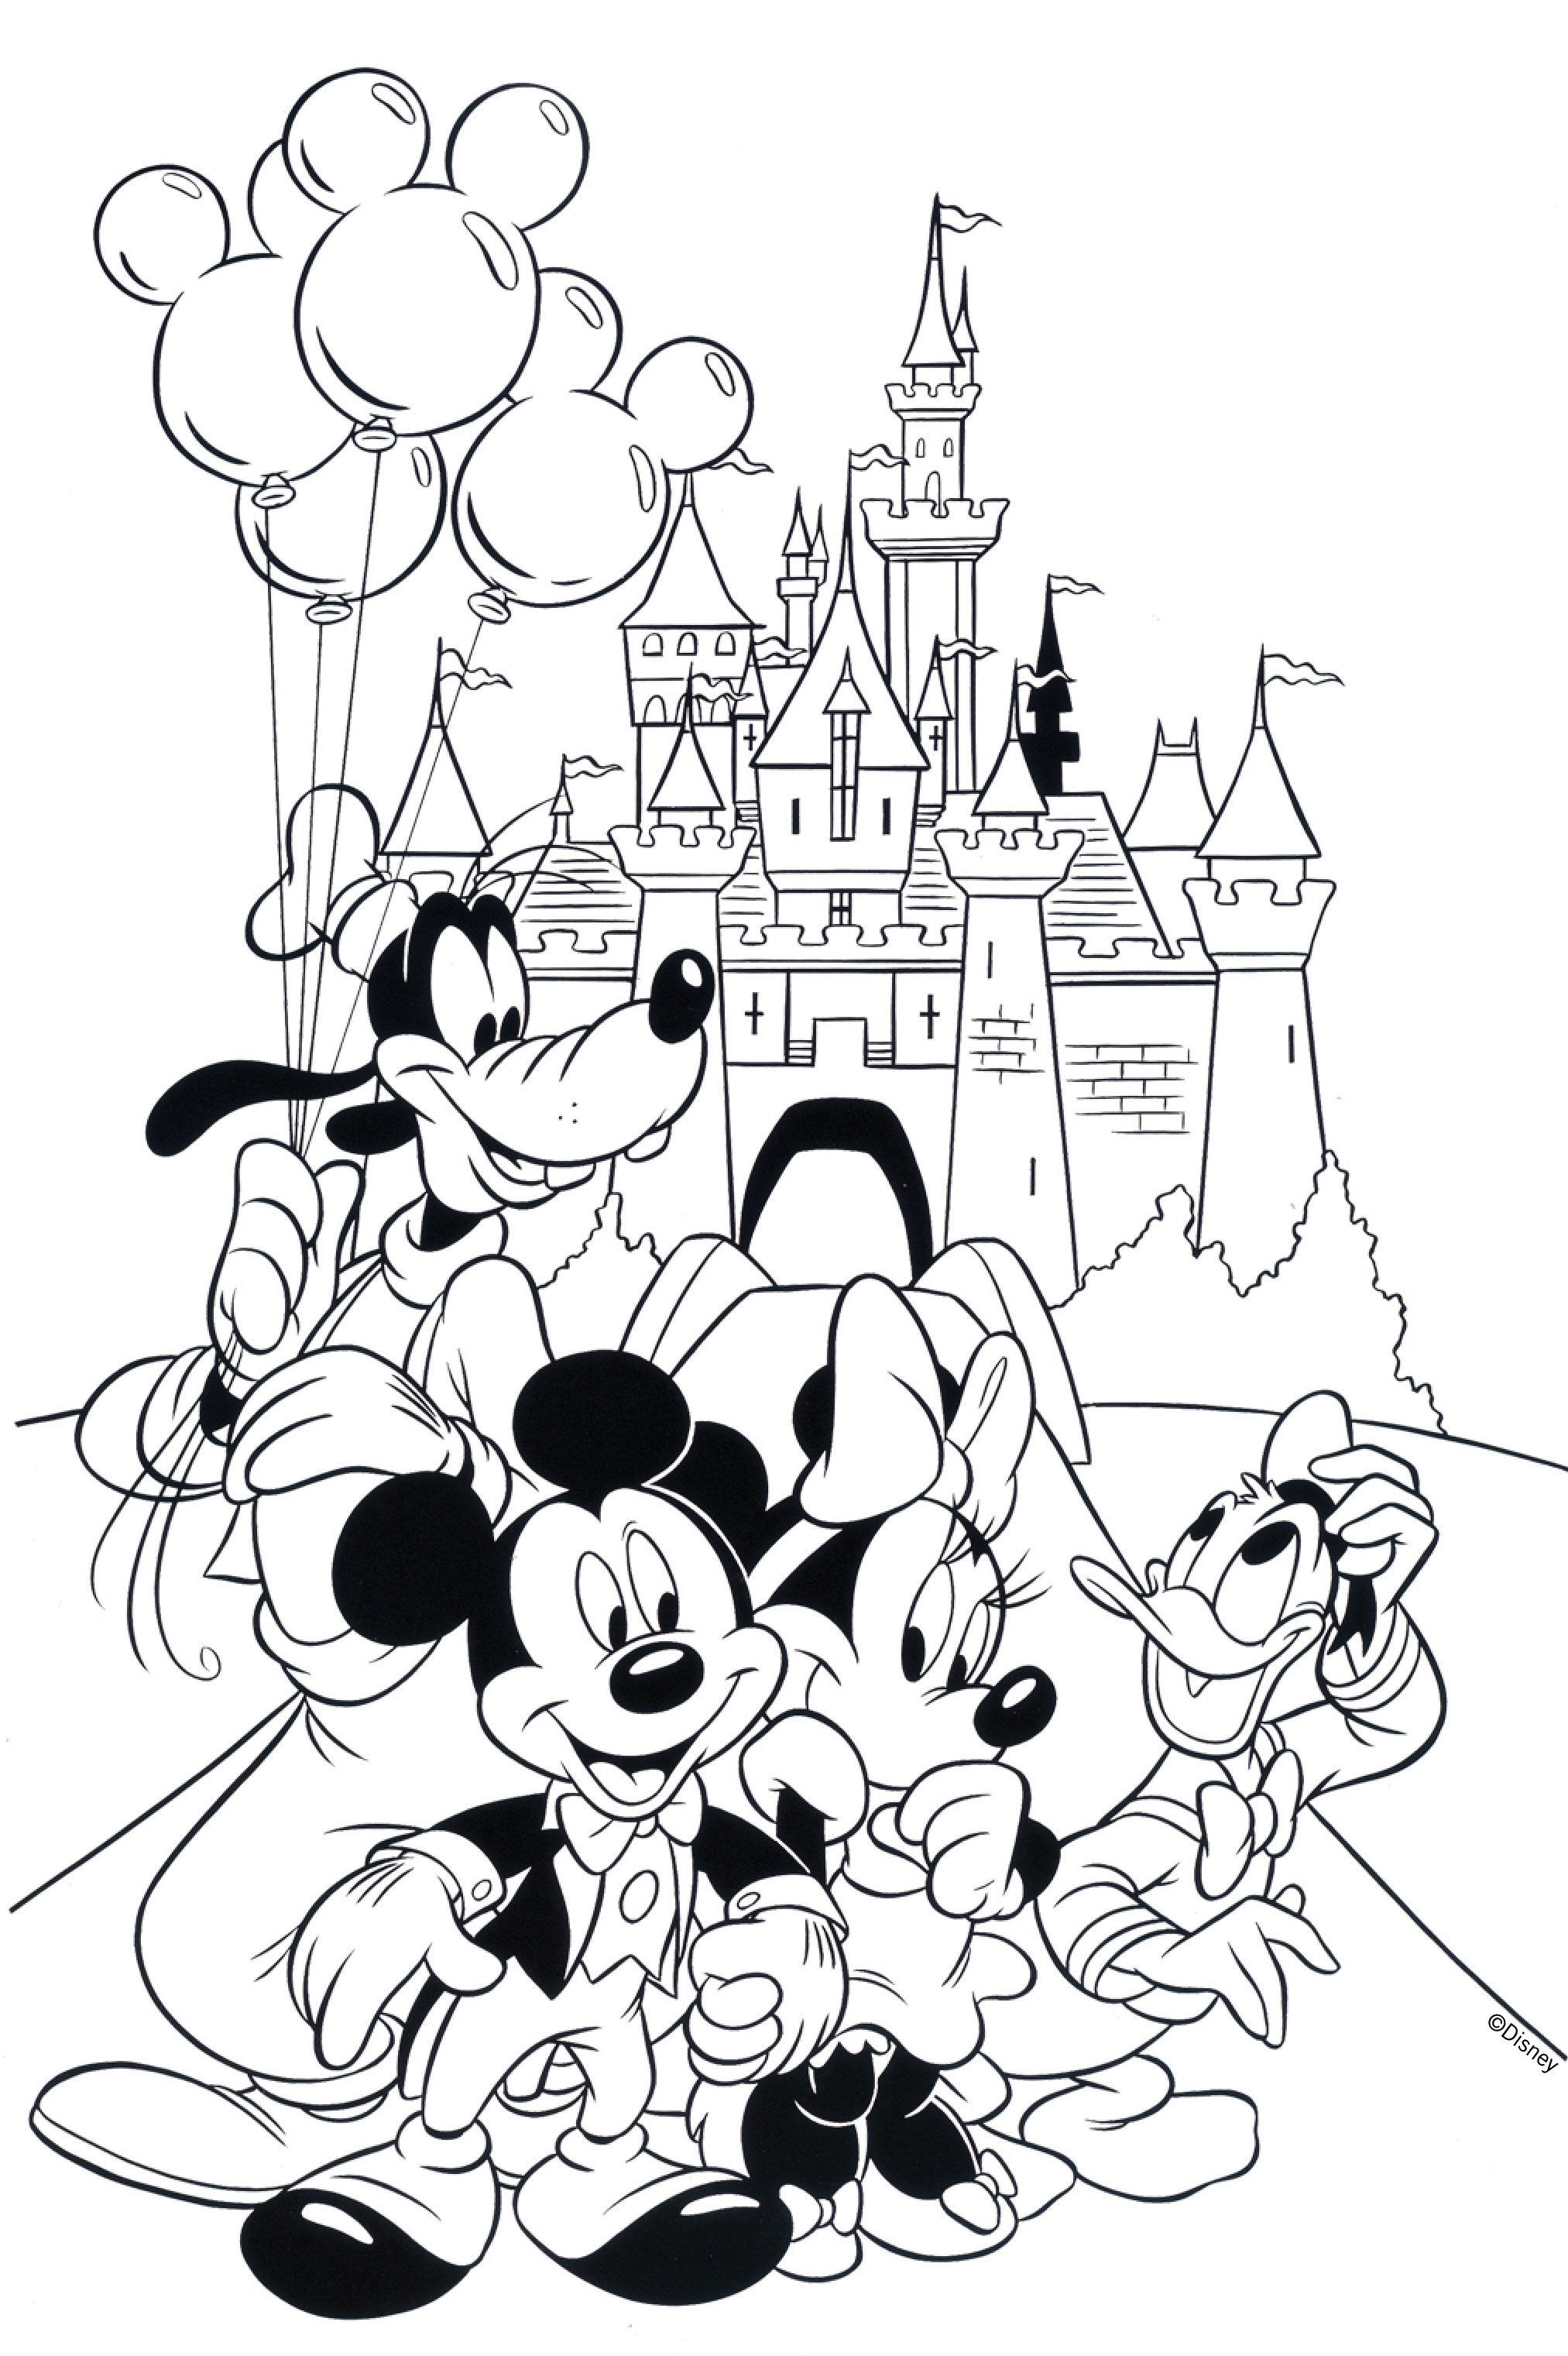 Disneyland Coloring Pages Disneyland Castle Coloring Pages Disneyland Castle Coloring Page Disney Coloring Pages Mickey Coloring Pages Cartoon Coloring Pages